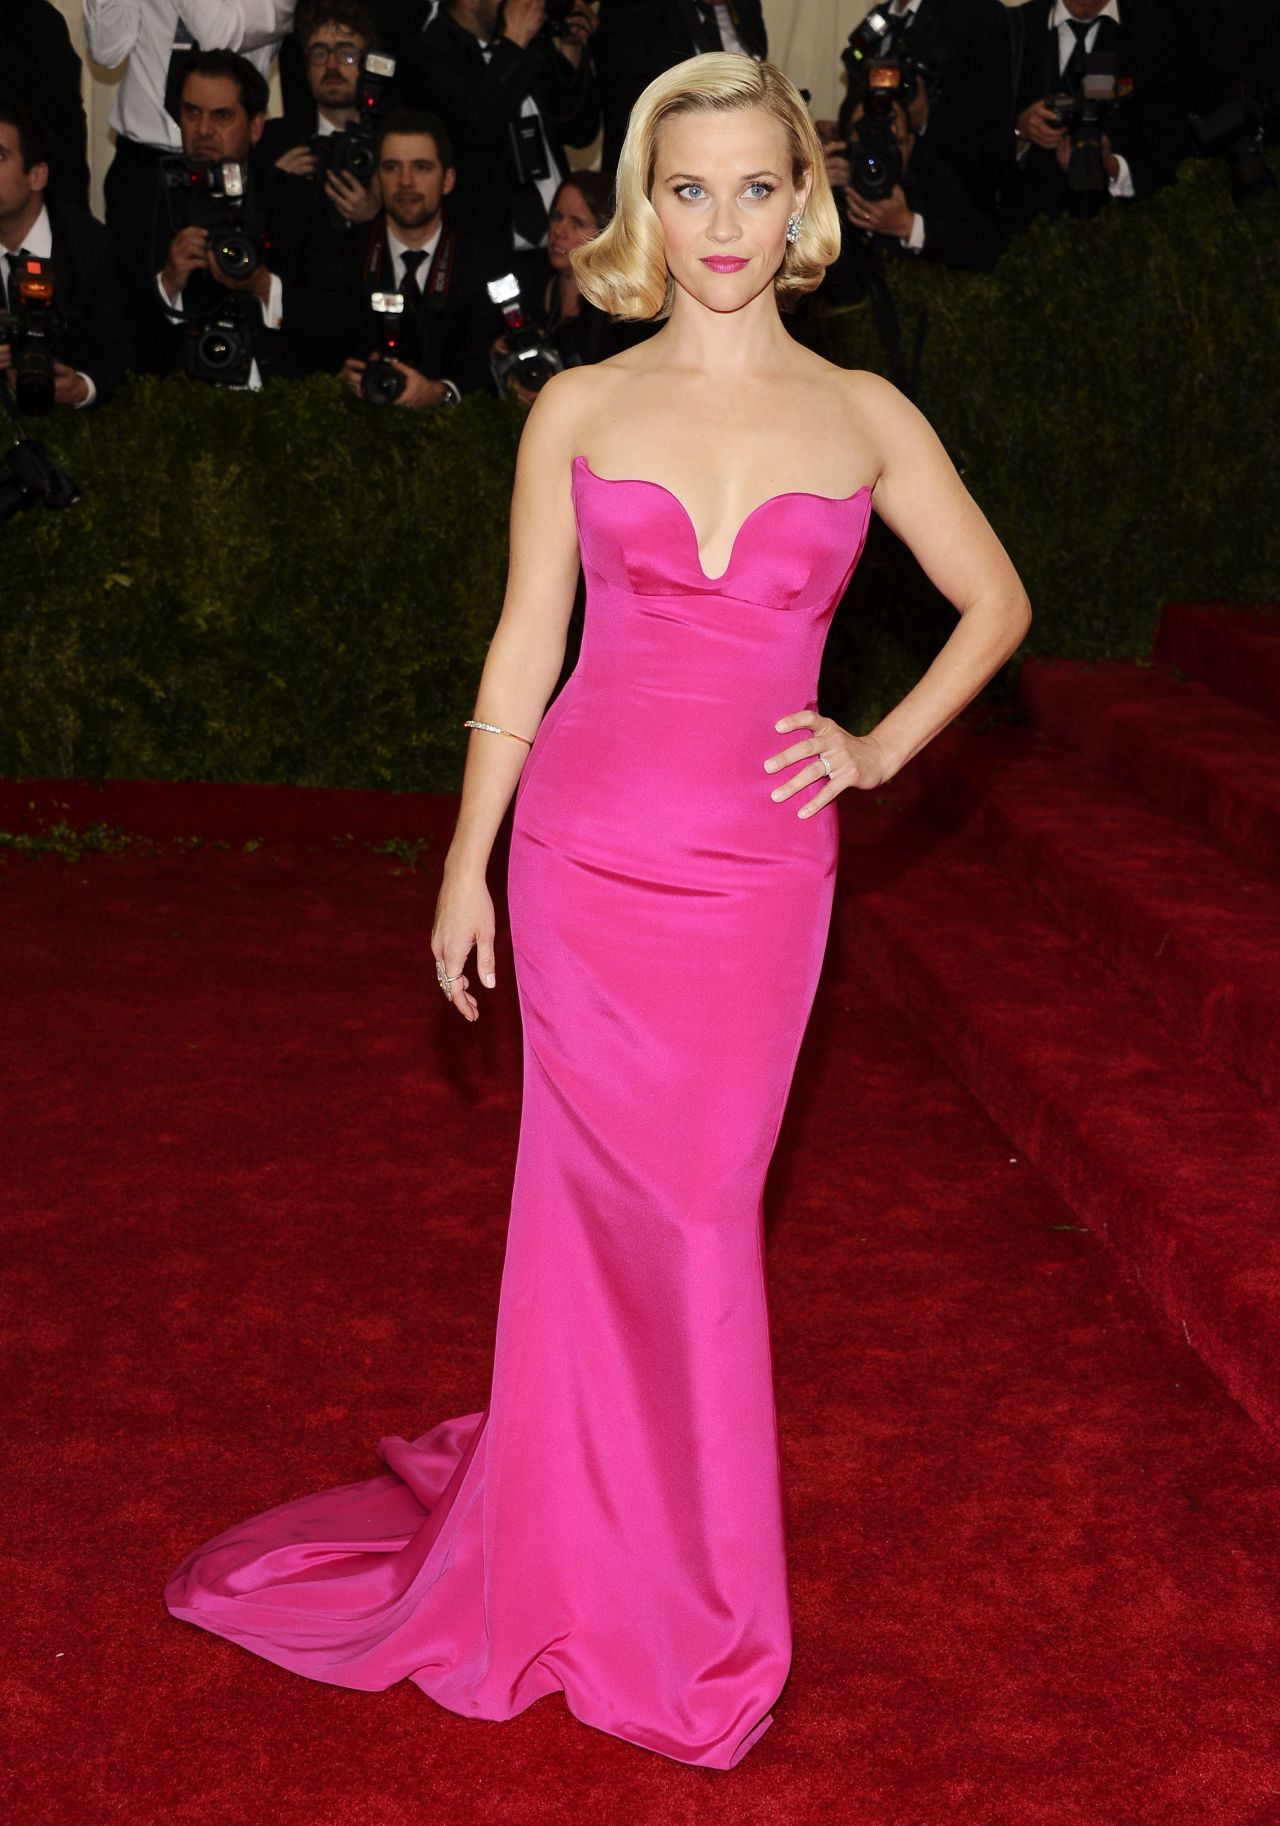 Reese Witherspoon 2014 Met Gala In New York City